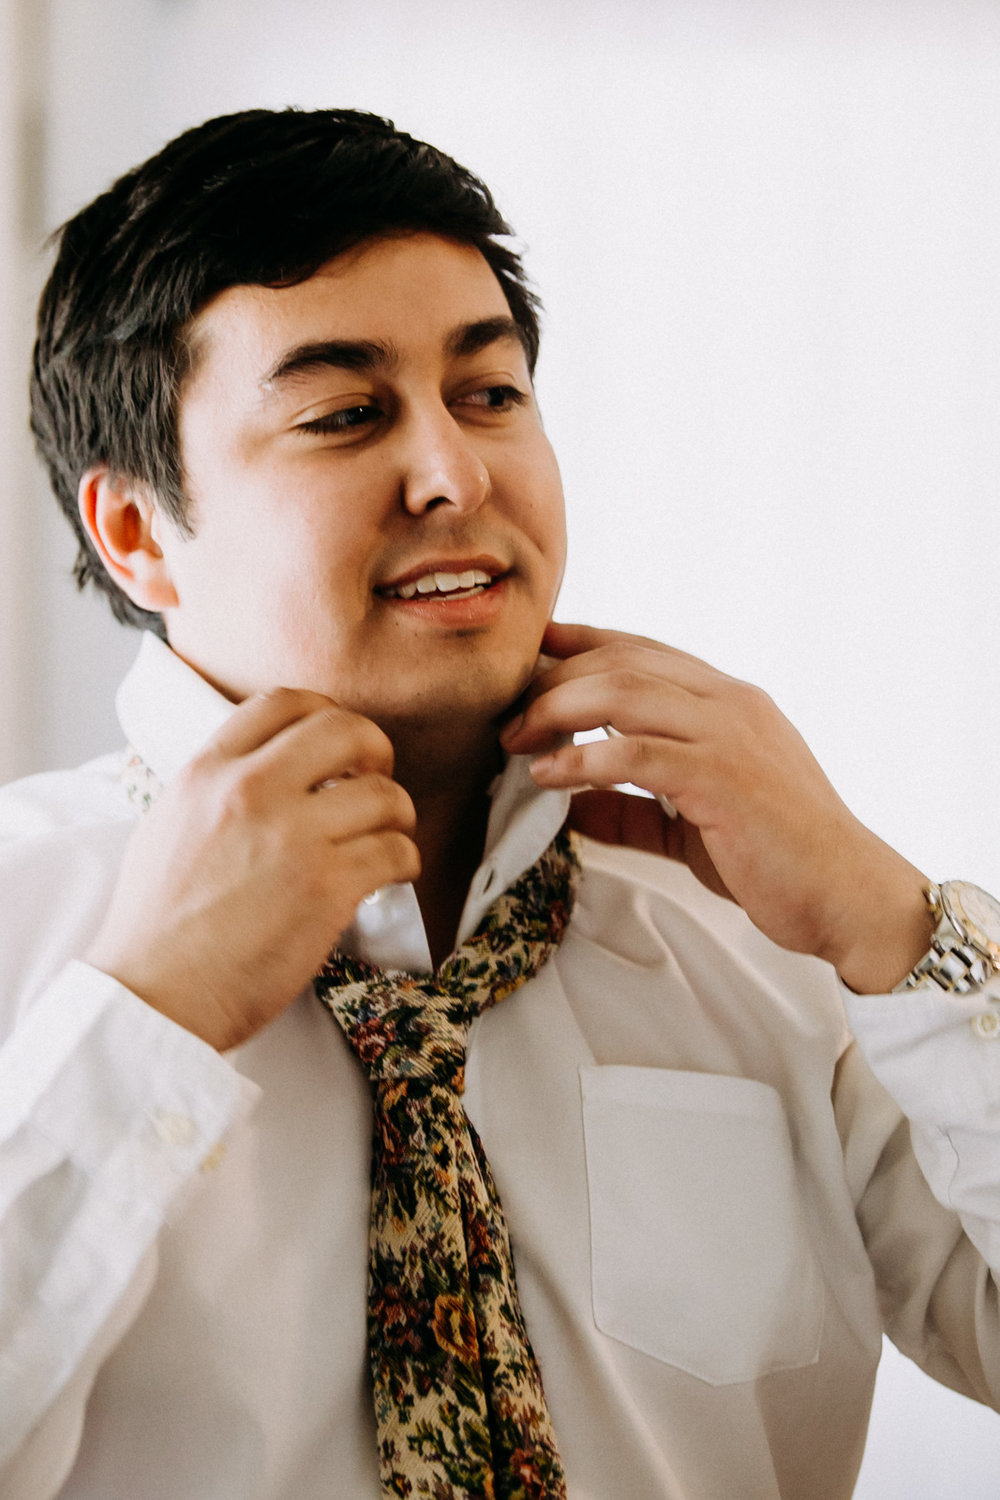 Groom putting on floral tie